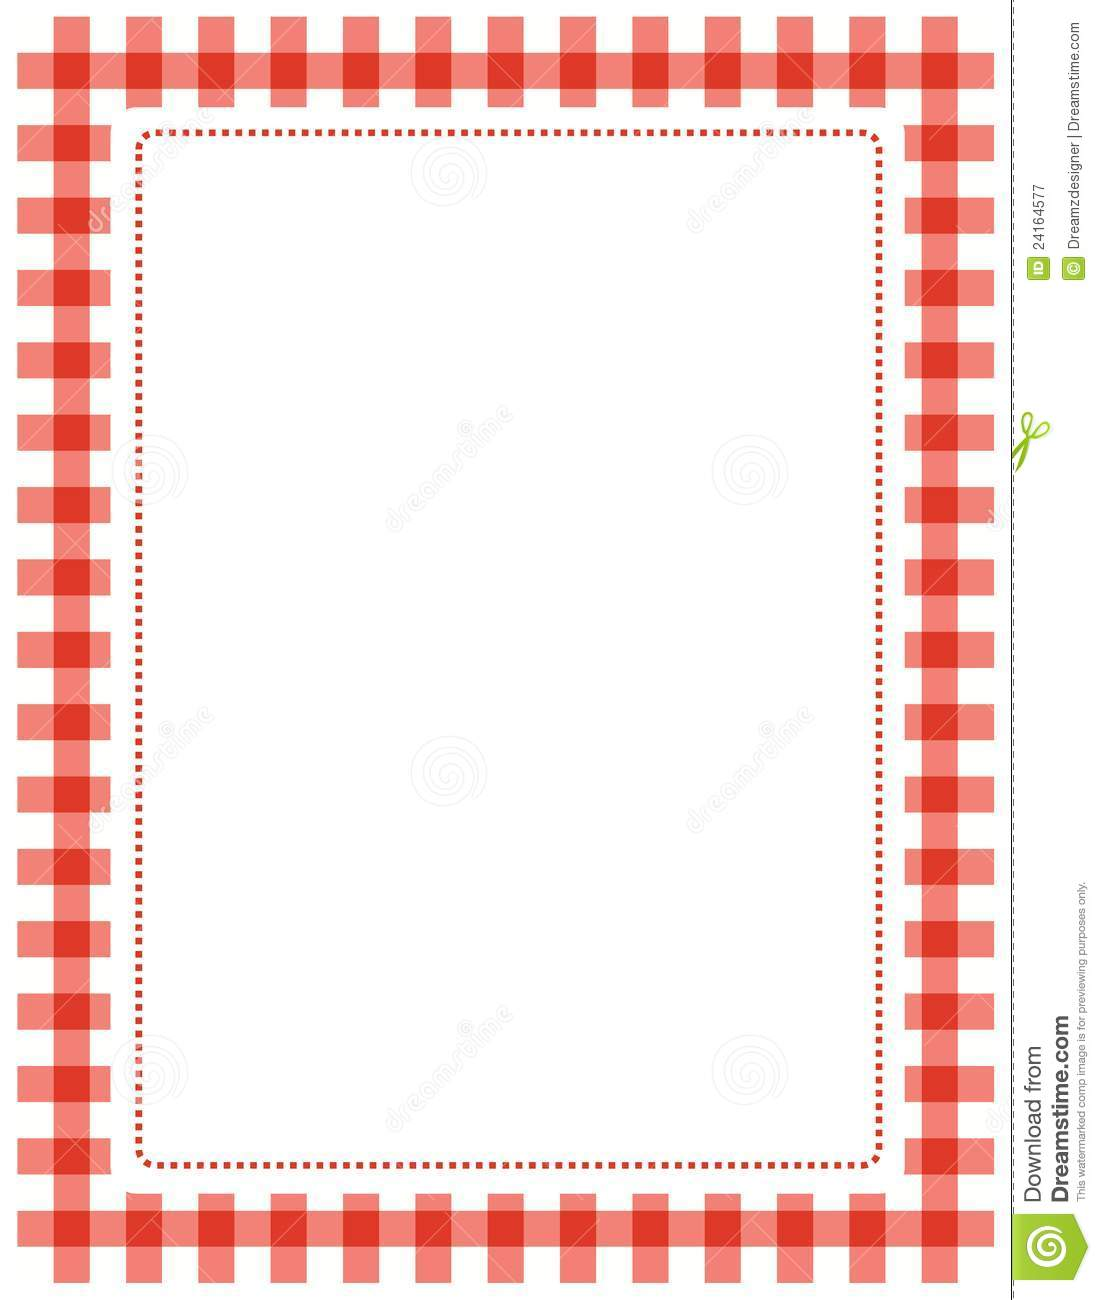 Gingham frame stock vector. Illustration of canvas, coloured ...